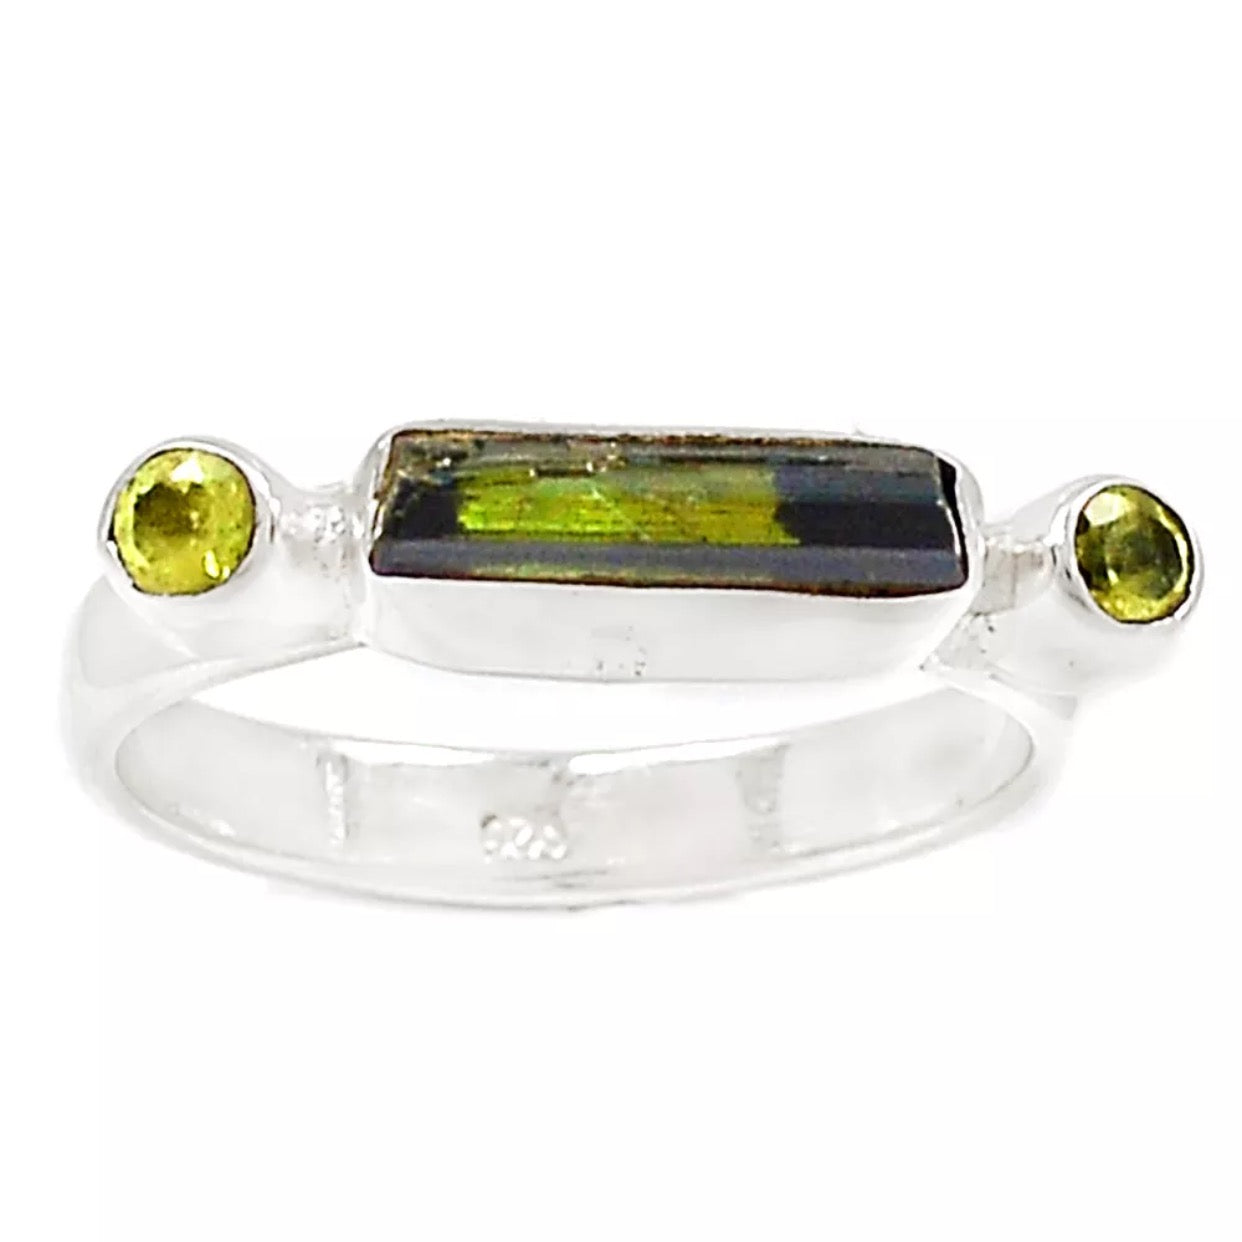 Green Tourmaline & Peridot Linear Sterling Silver Ring - Keja Designs Jewelry